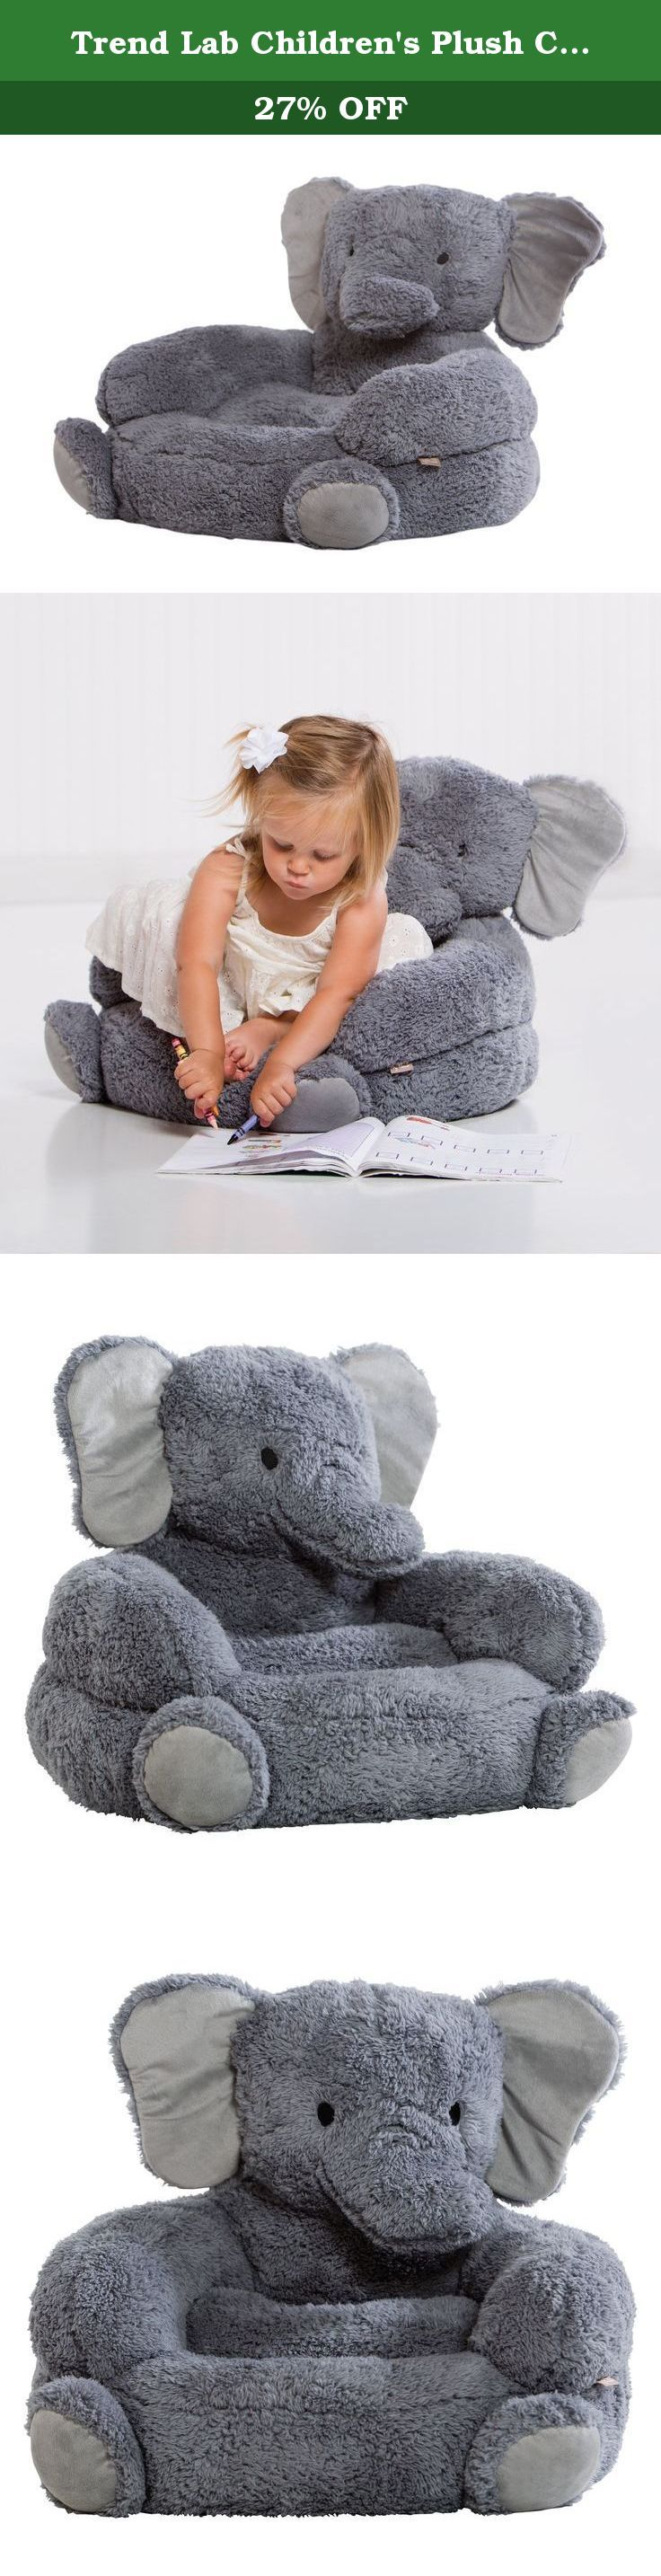 "Trend Lab Children's Plush Character Chair, Elephant/Gray. The Trend Lab Elephant Plush Character Chair brings delightful whimsy to your little one's world and to any room of the house. The Elephant chair is the most comfortable companion for reading, relaxing and snuggling thanks to the soft velboa ""fur"", perfect size and contoured support. Chair measures 18 in x 18 in x 20 in and is suitable for most children. Please use parental caution and supervision. Chair is intended for children…"